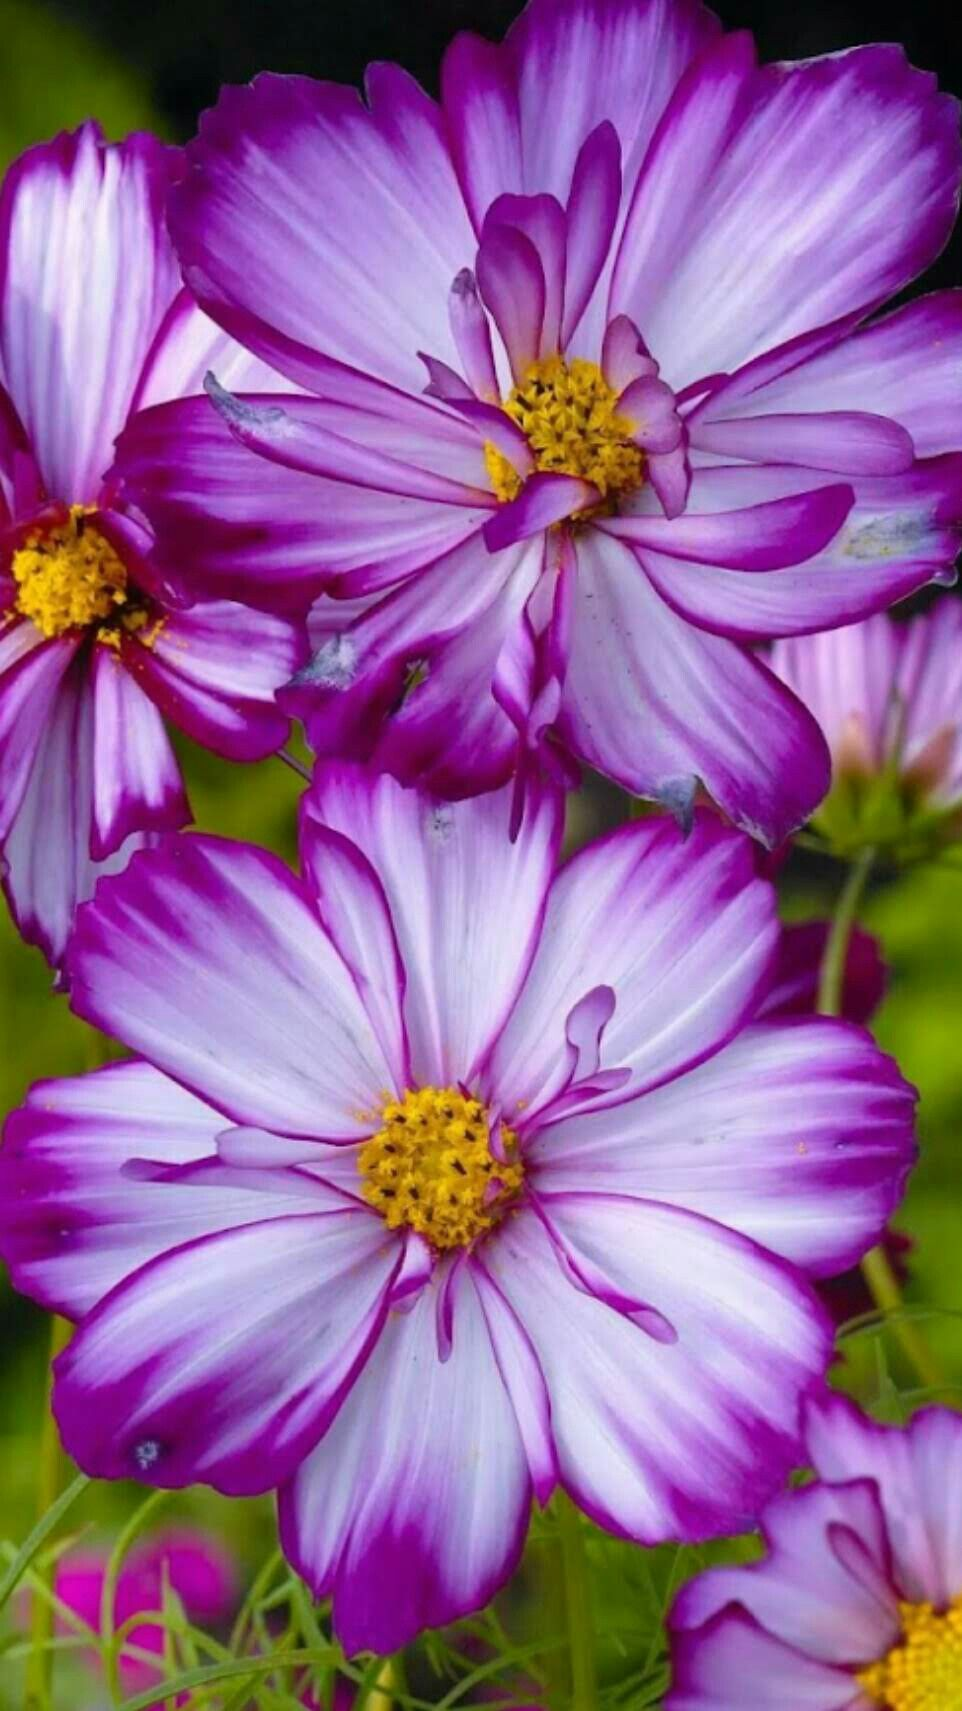 Pin By Rozinete Garcia On Flores Cosmos Flowers Purple Flowers Plants